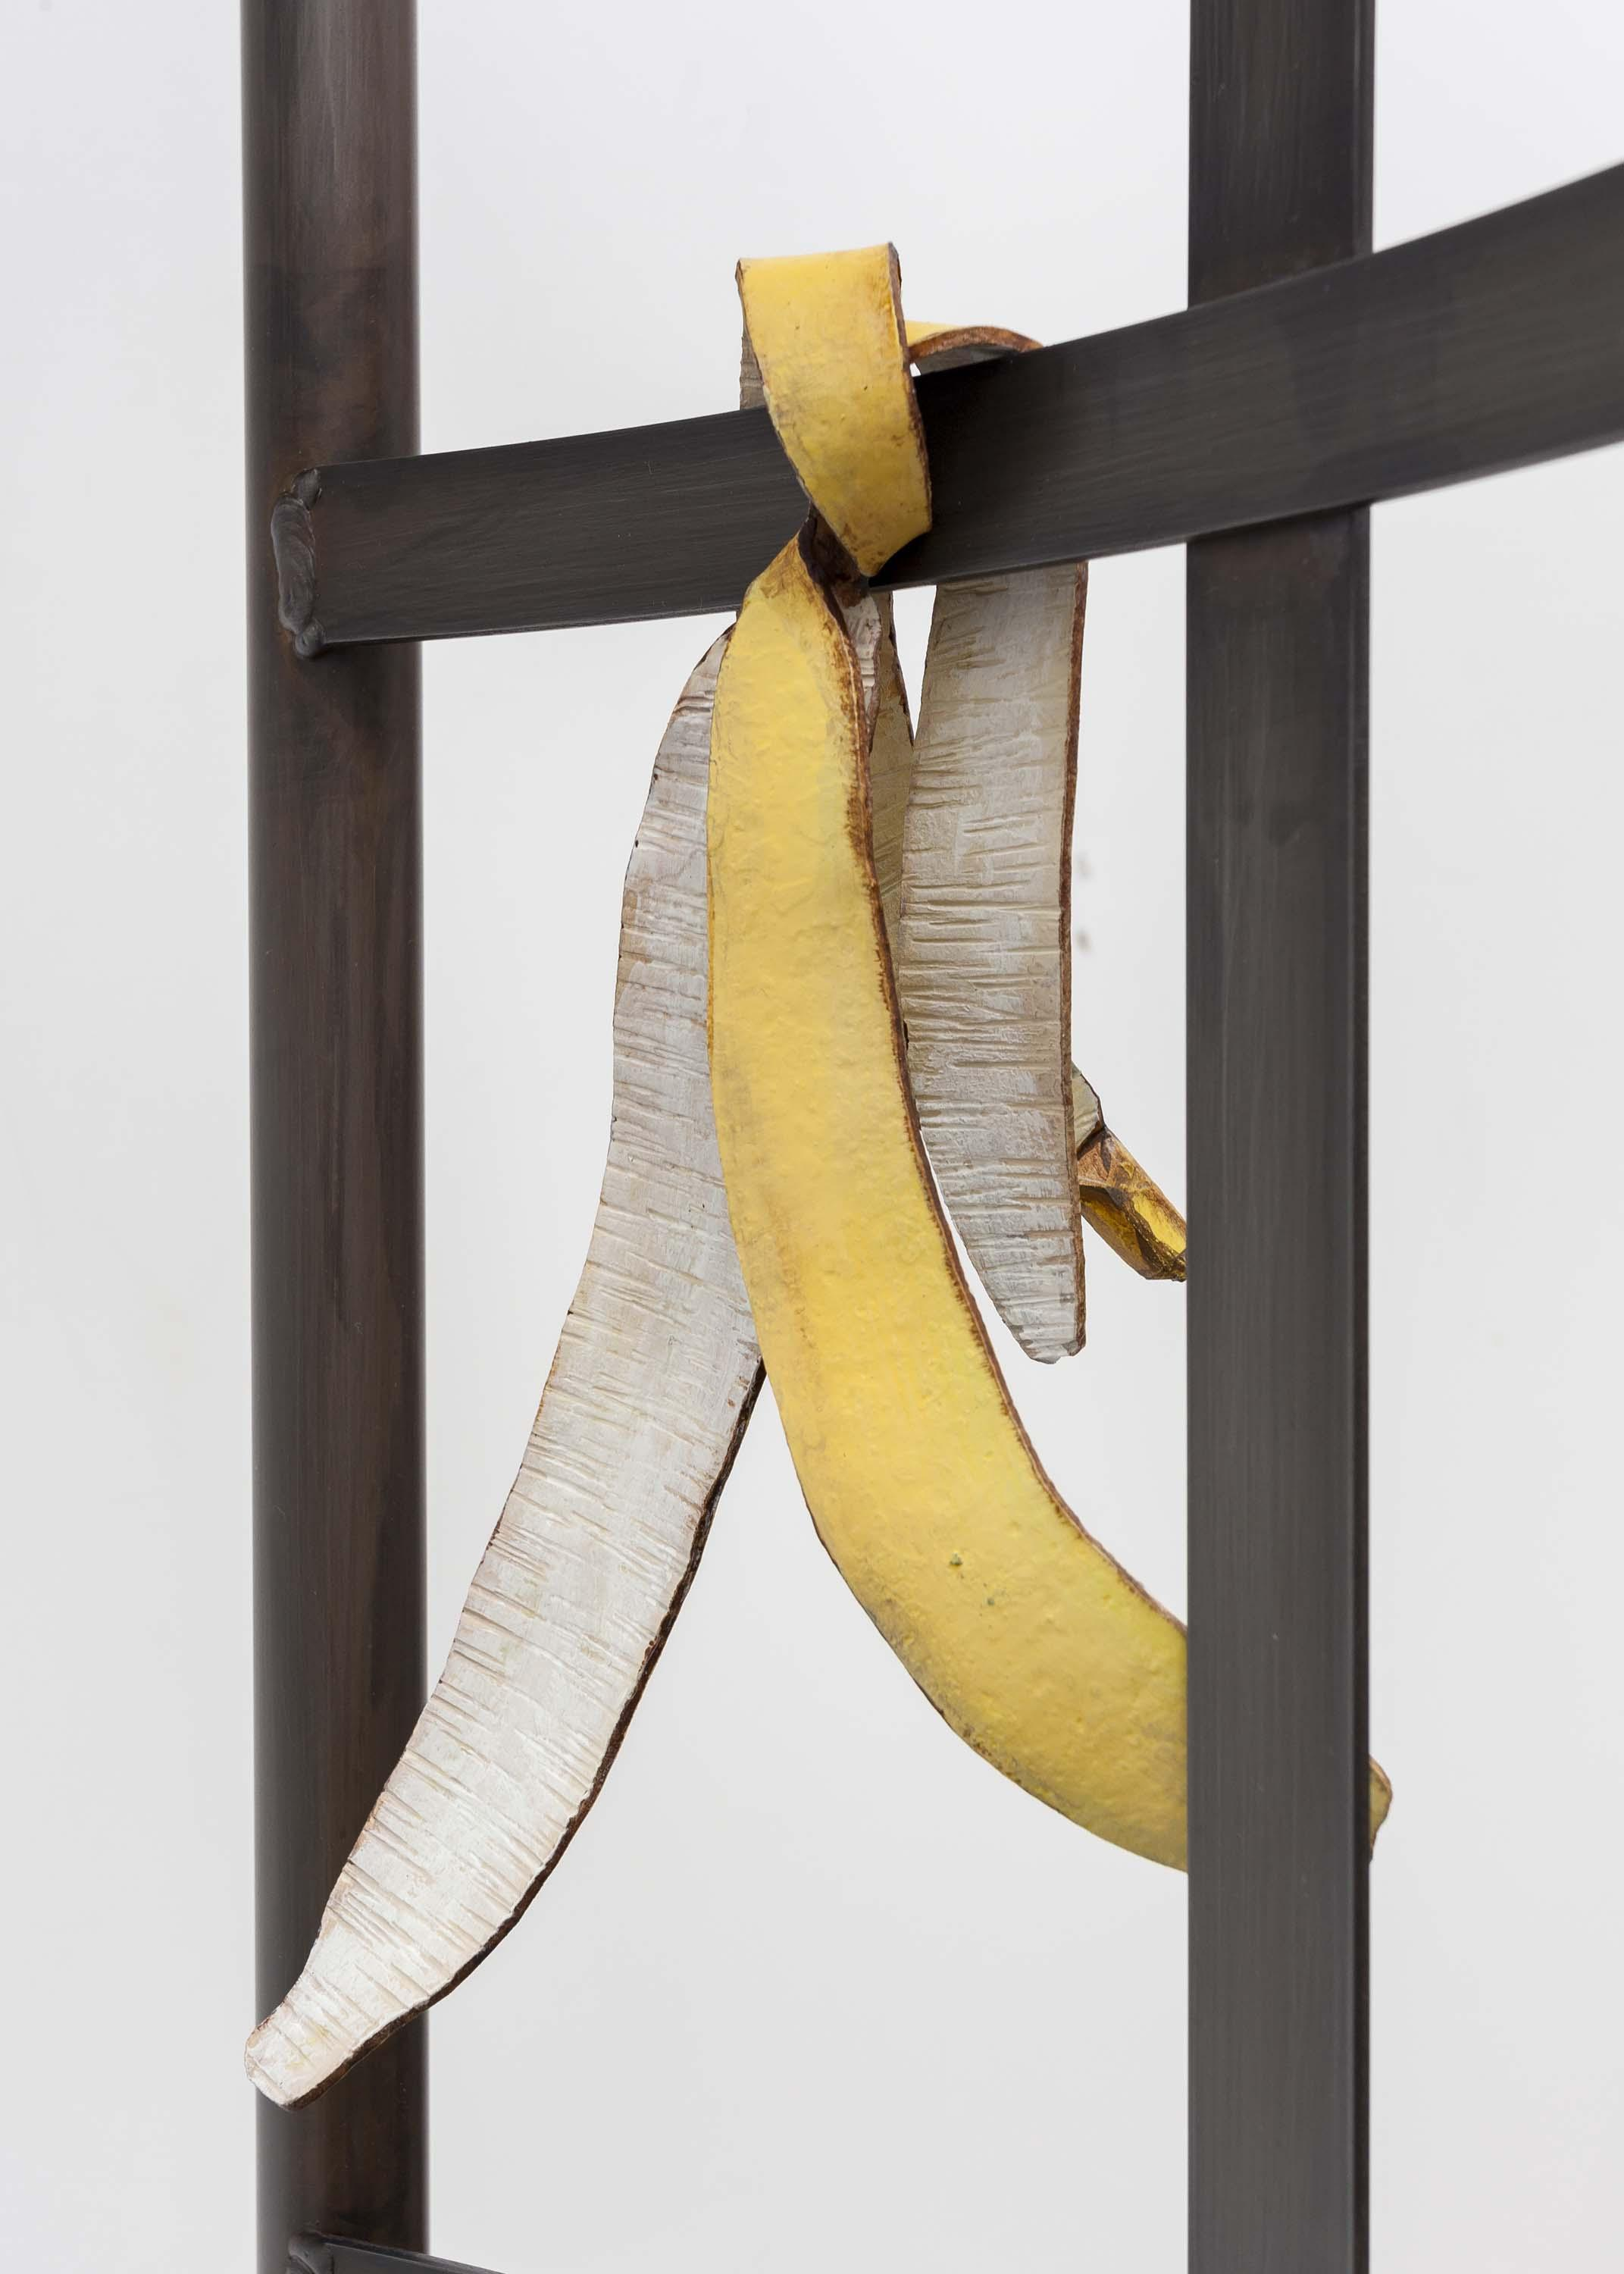 A close-up image shows a steel frame with a banana peel hanging off of it.